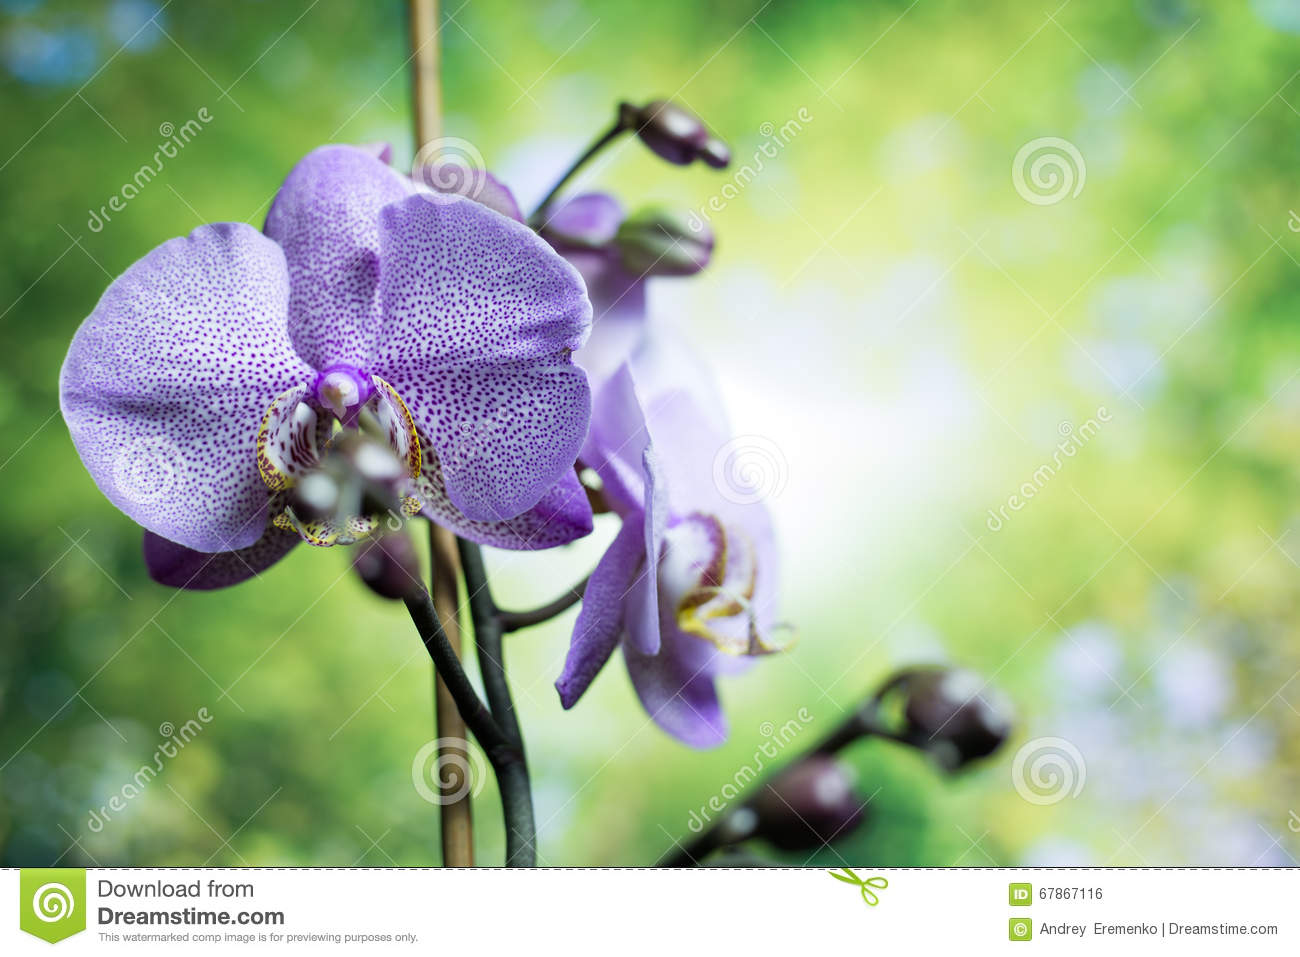 Streaked orchid flowers beautiful orchid flowers orchids purple streaked orchid flowers beautiful orchid flowers orchids purple beautiful purple orchid flower izmirmasajfo